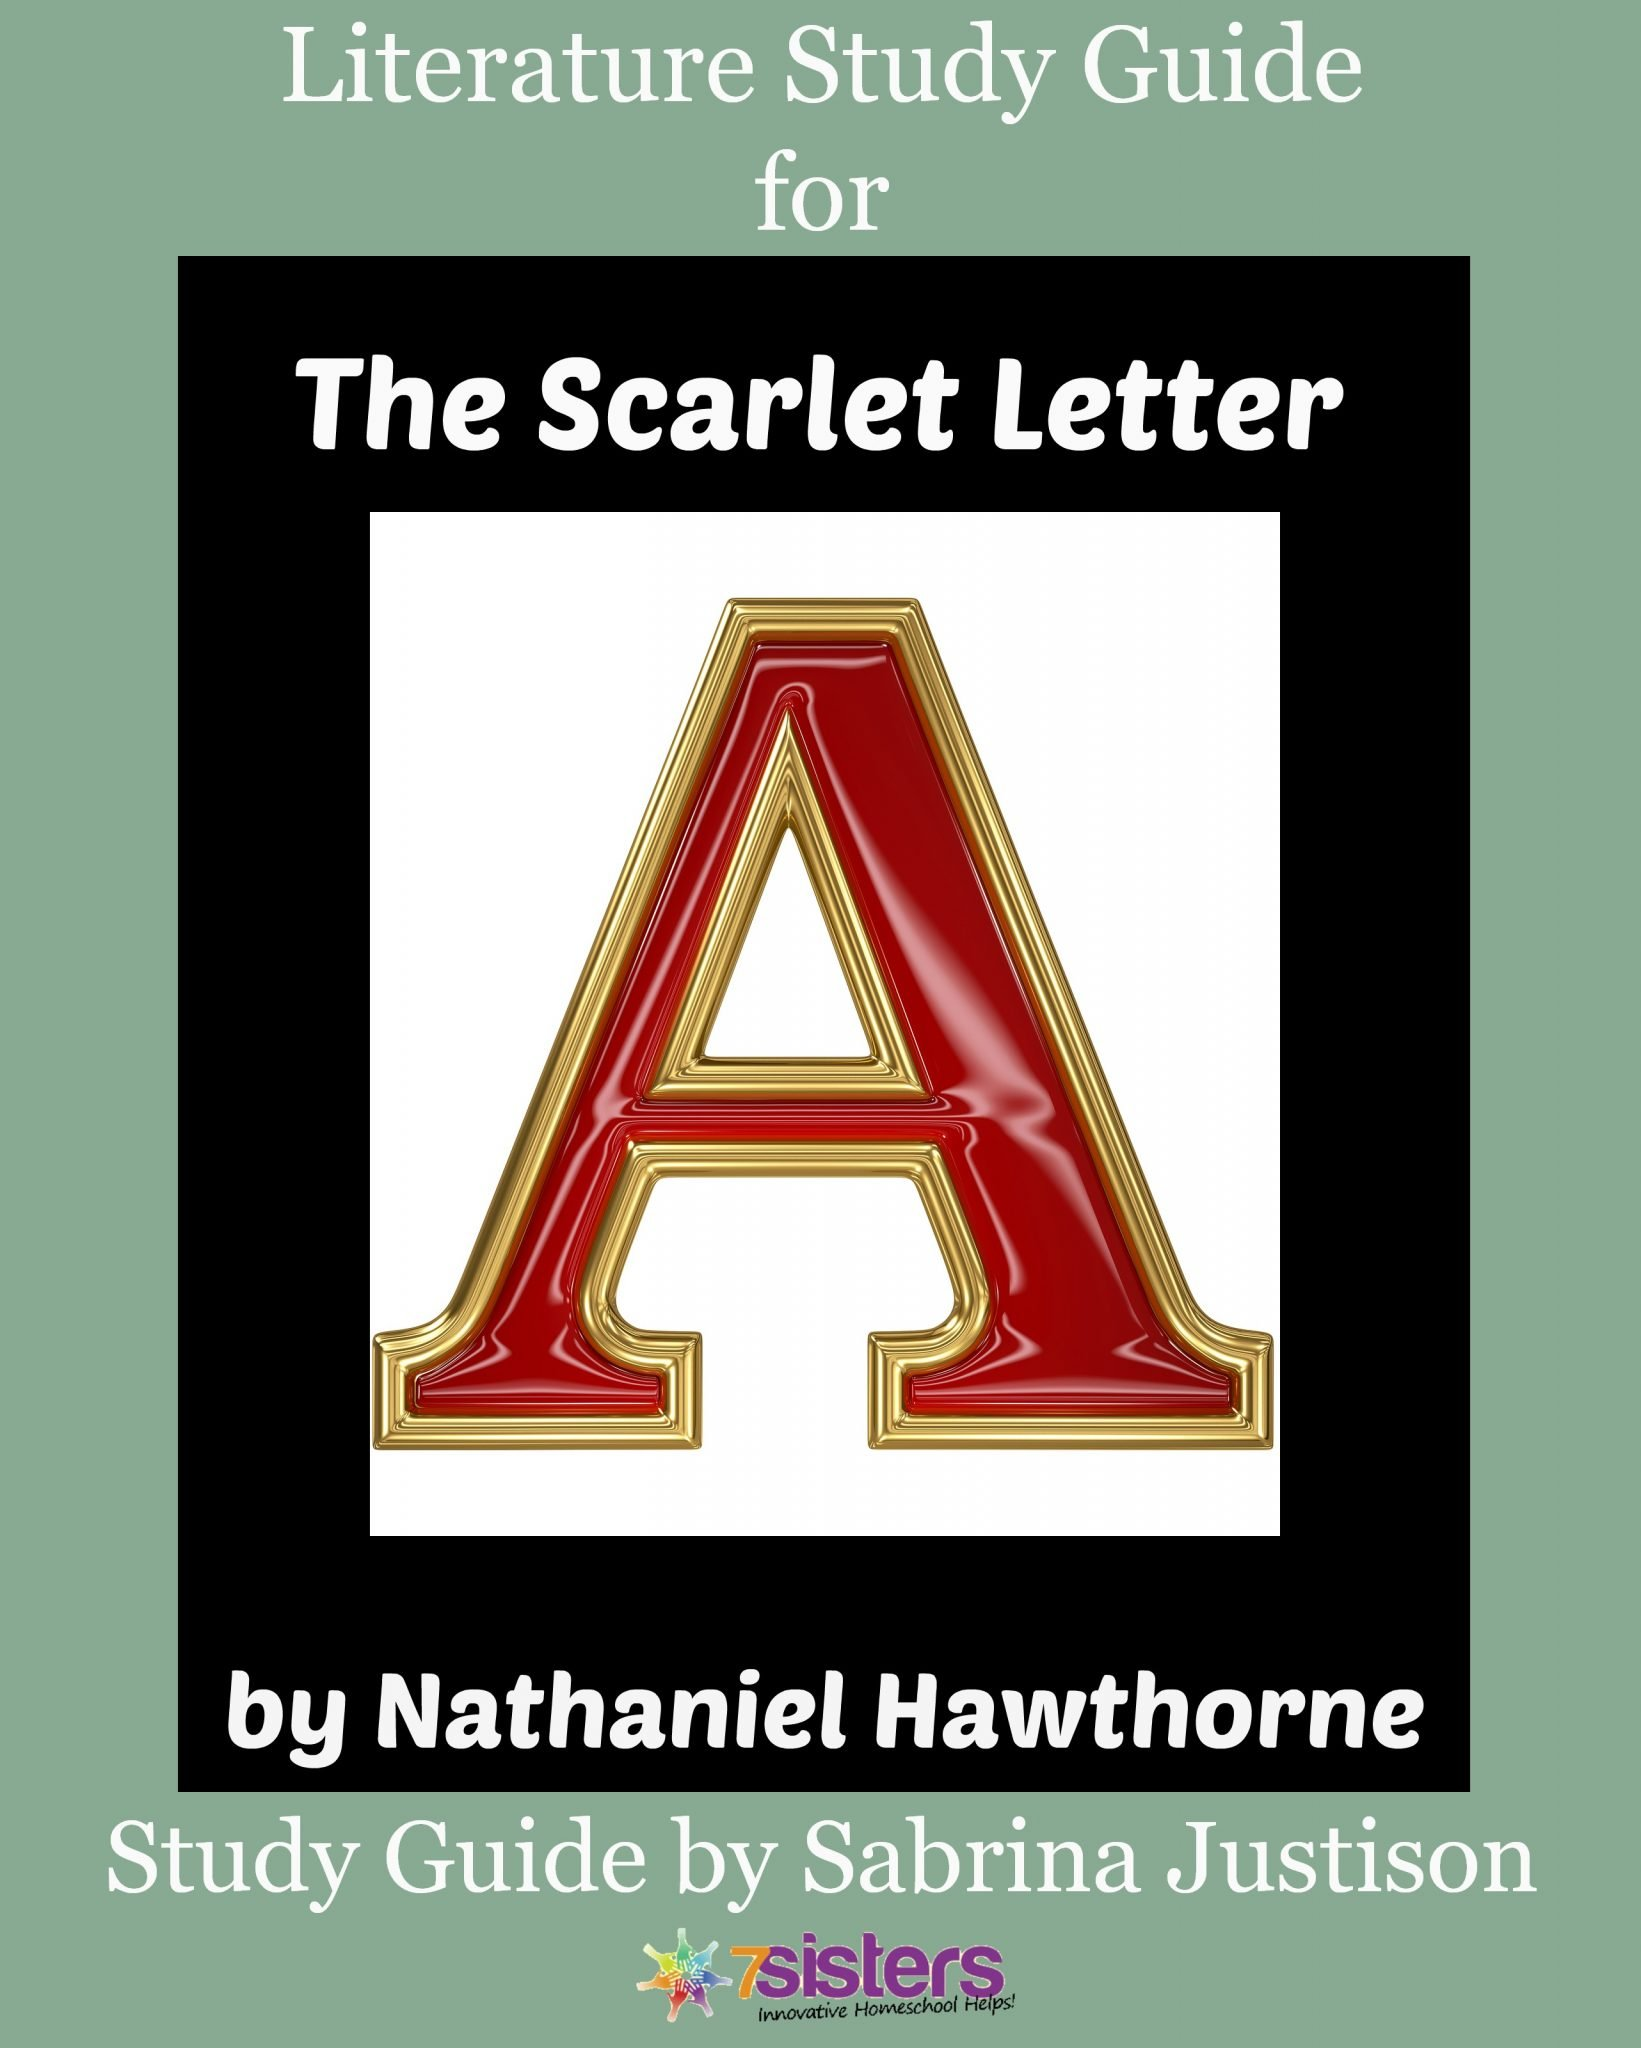 a literary analysis of the symbolism in the scarlet letter by nathaniel hawthorne Literary devices in the scarlet letter by nathaniel hawthorne include symbolism and theme the scarlet letter worn by hester and the red mark that appears on dimmesdale's chest represent guilt and.